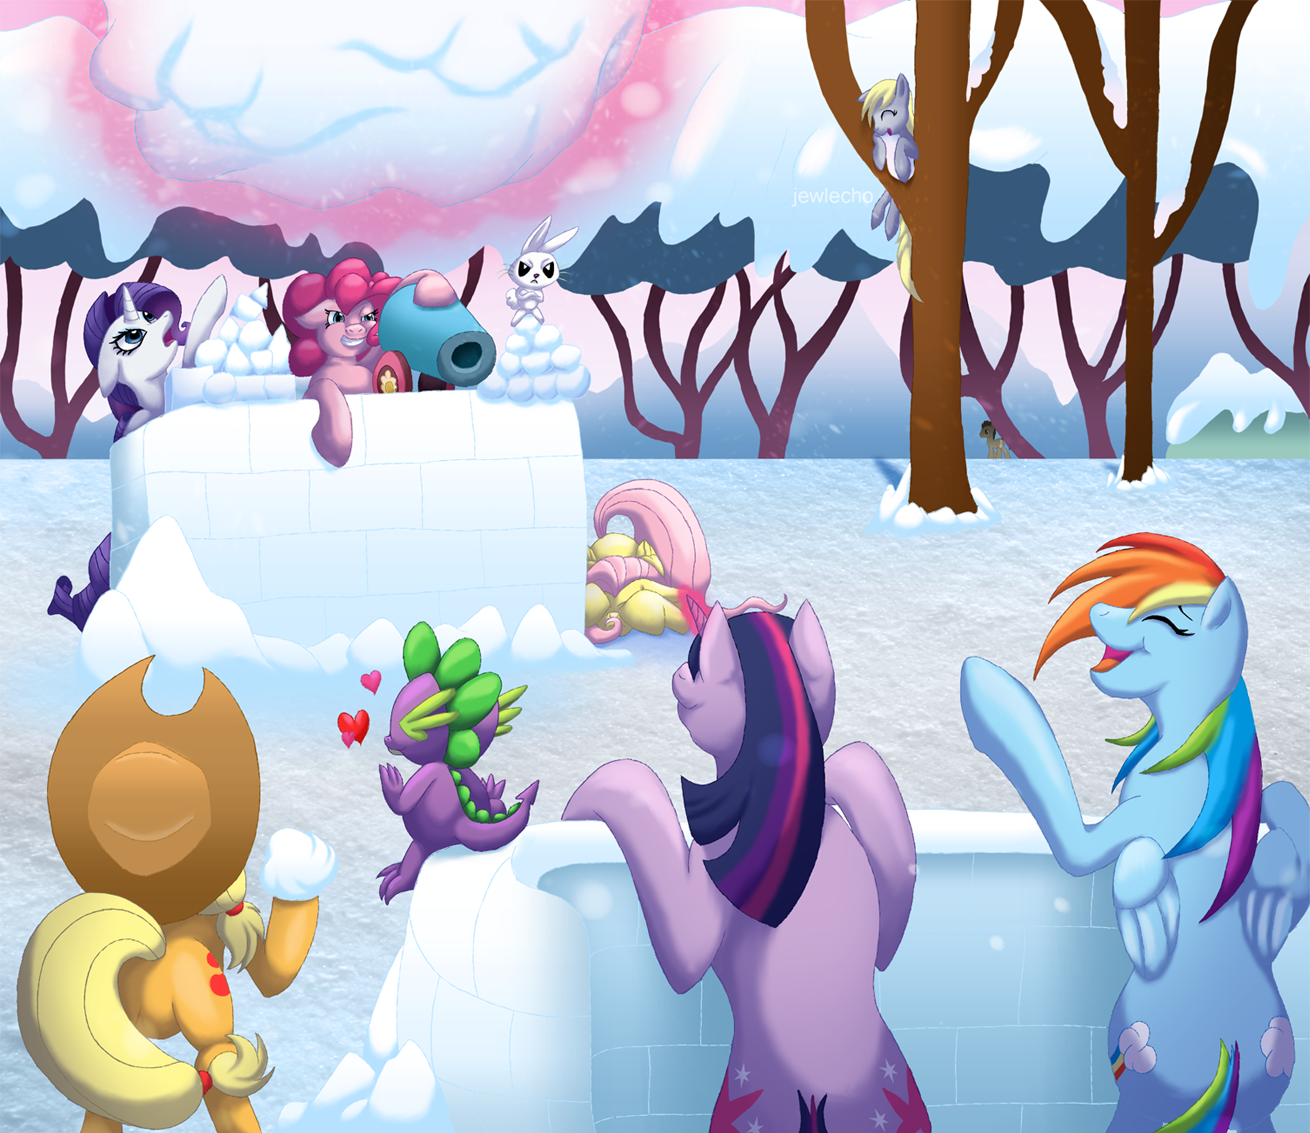 War of the Snowballs | My Little Pony: Friendship is Magic